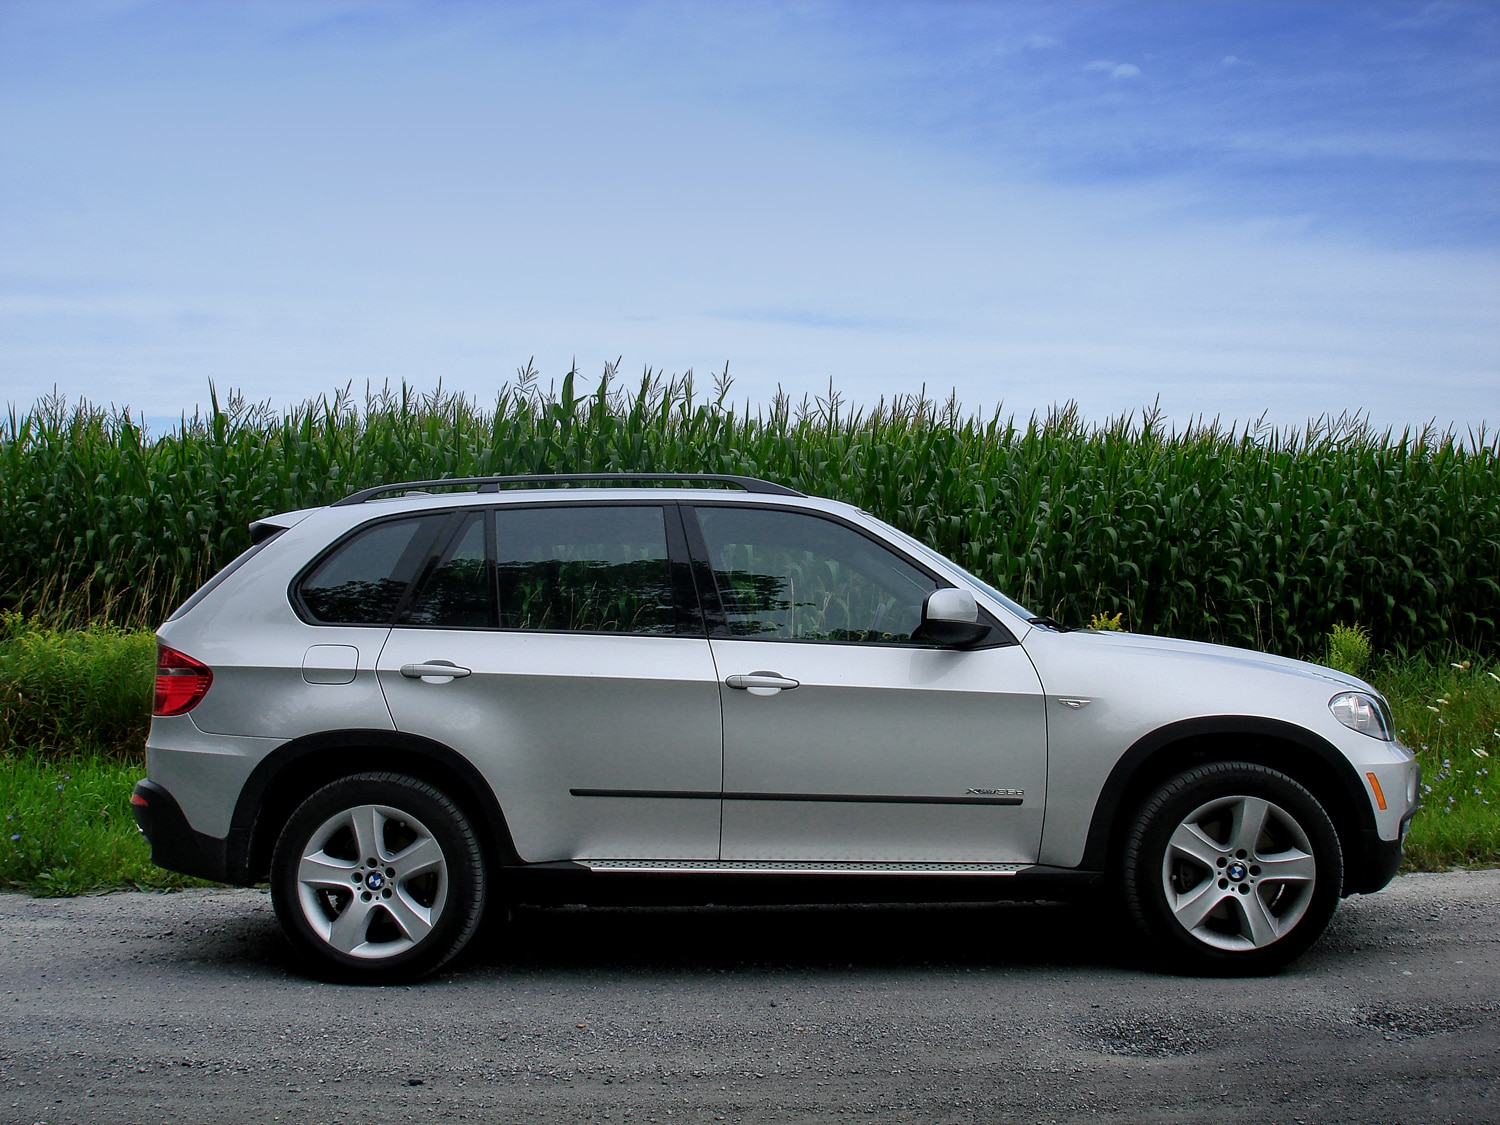 bmw recalling diesel powered x5 for fuel heater issue. Black Bedroom Furniture Sets. Home Design Ideas